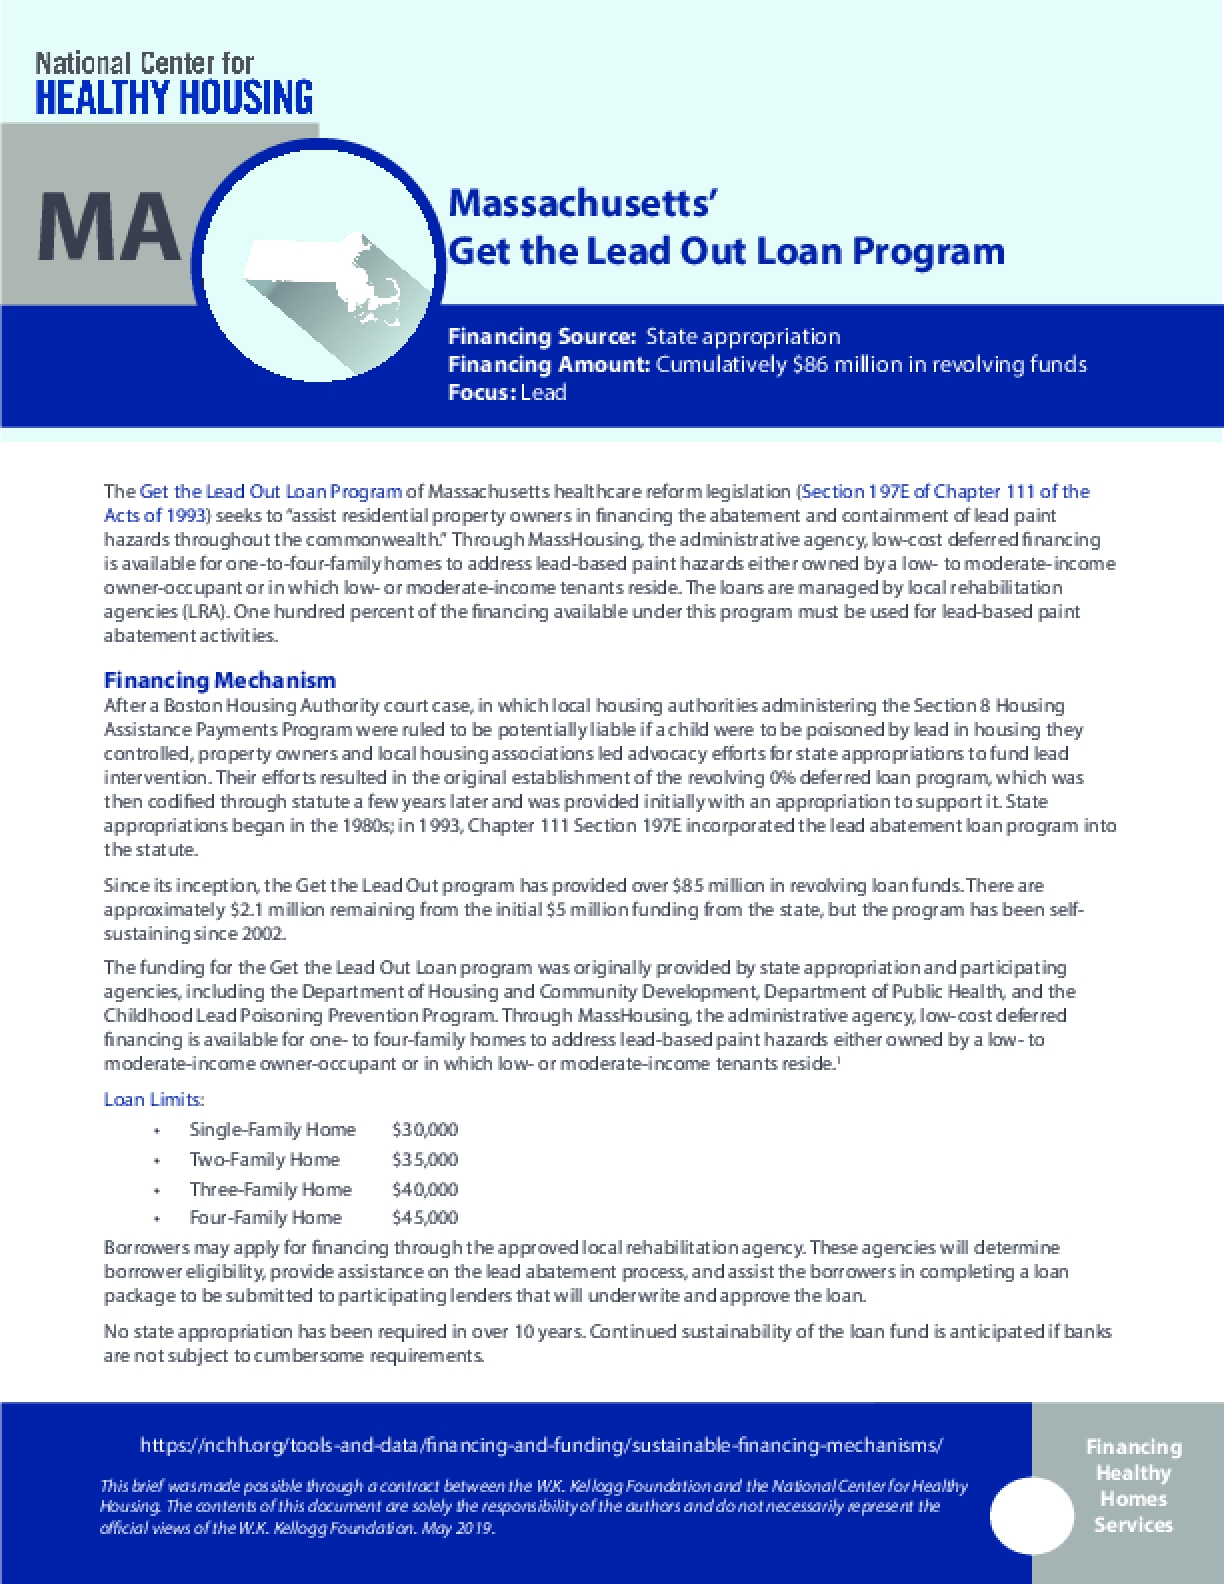 Massachusetts' Get the Lead Out Loan Program